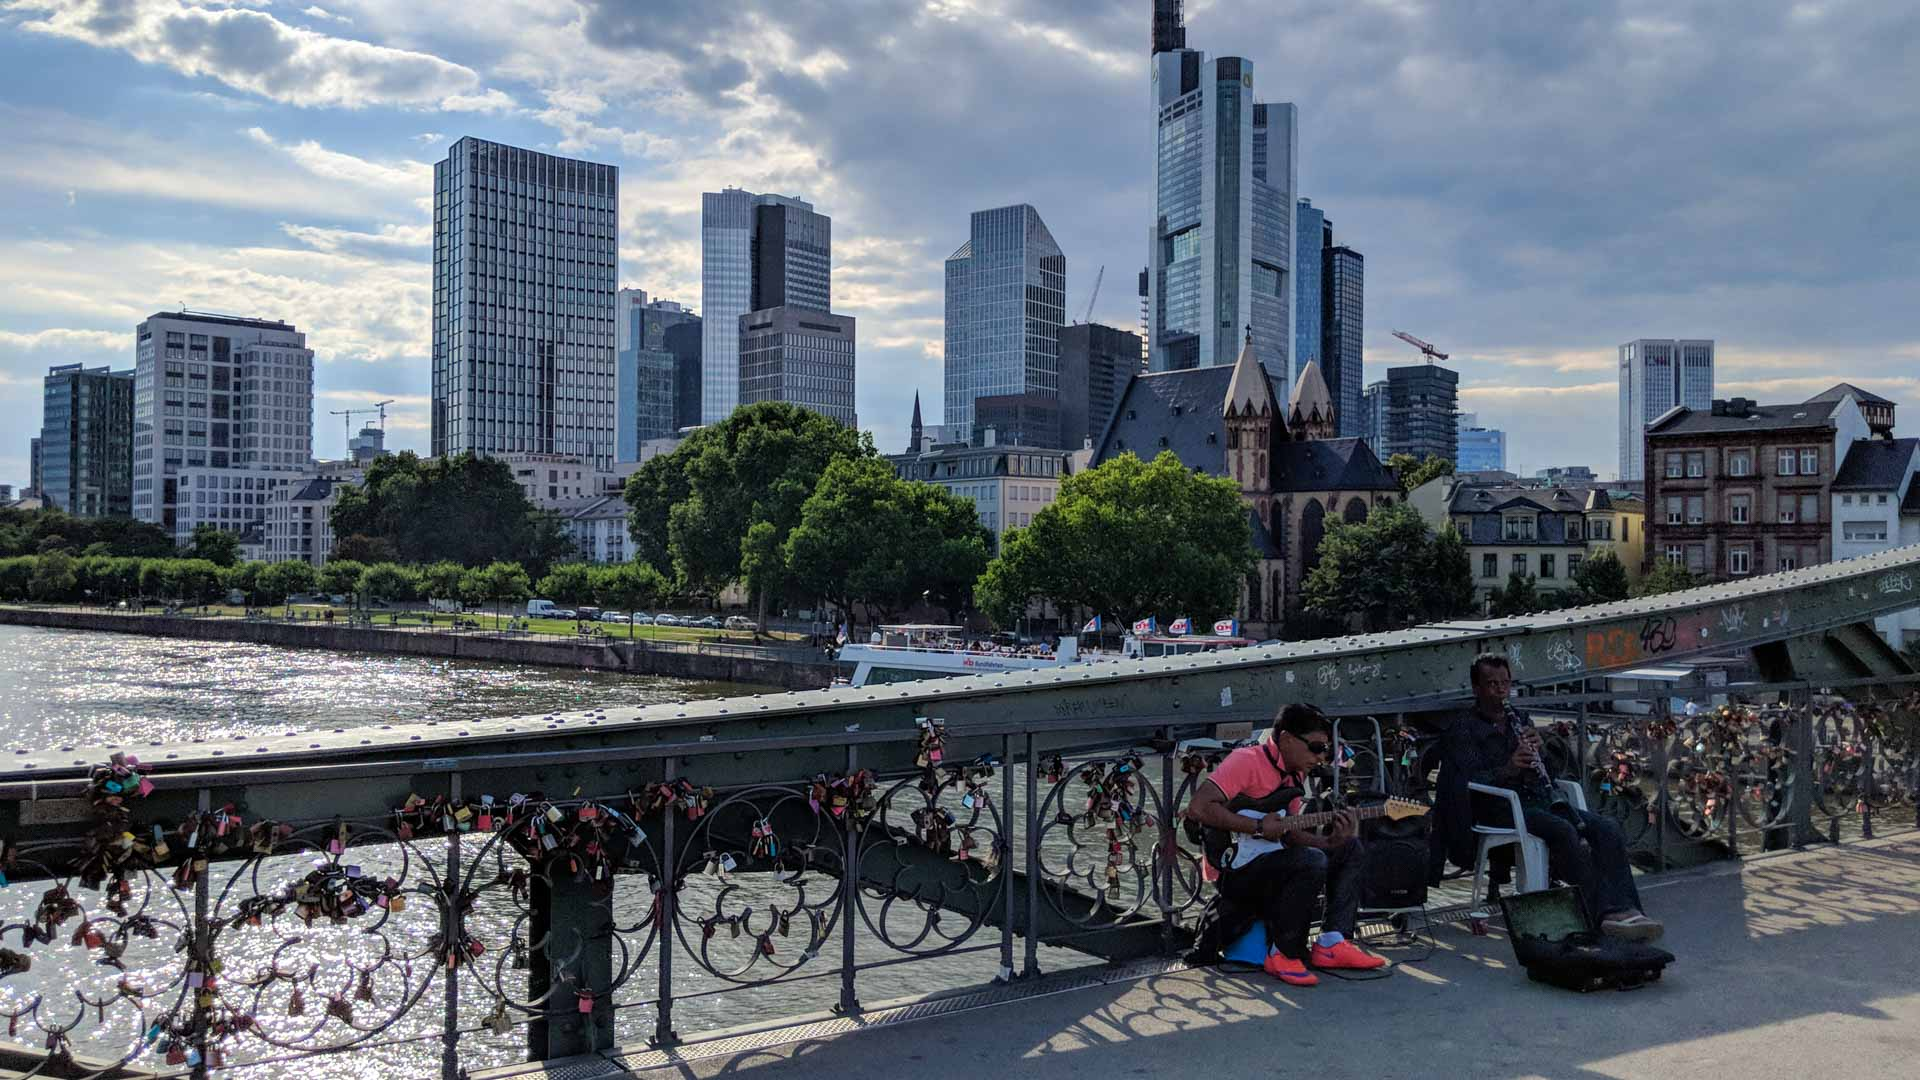 View of Frankfurt from the Eiserner Steg bridge